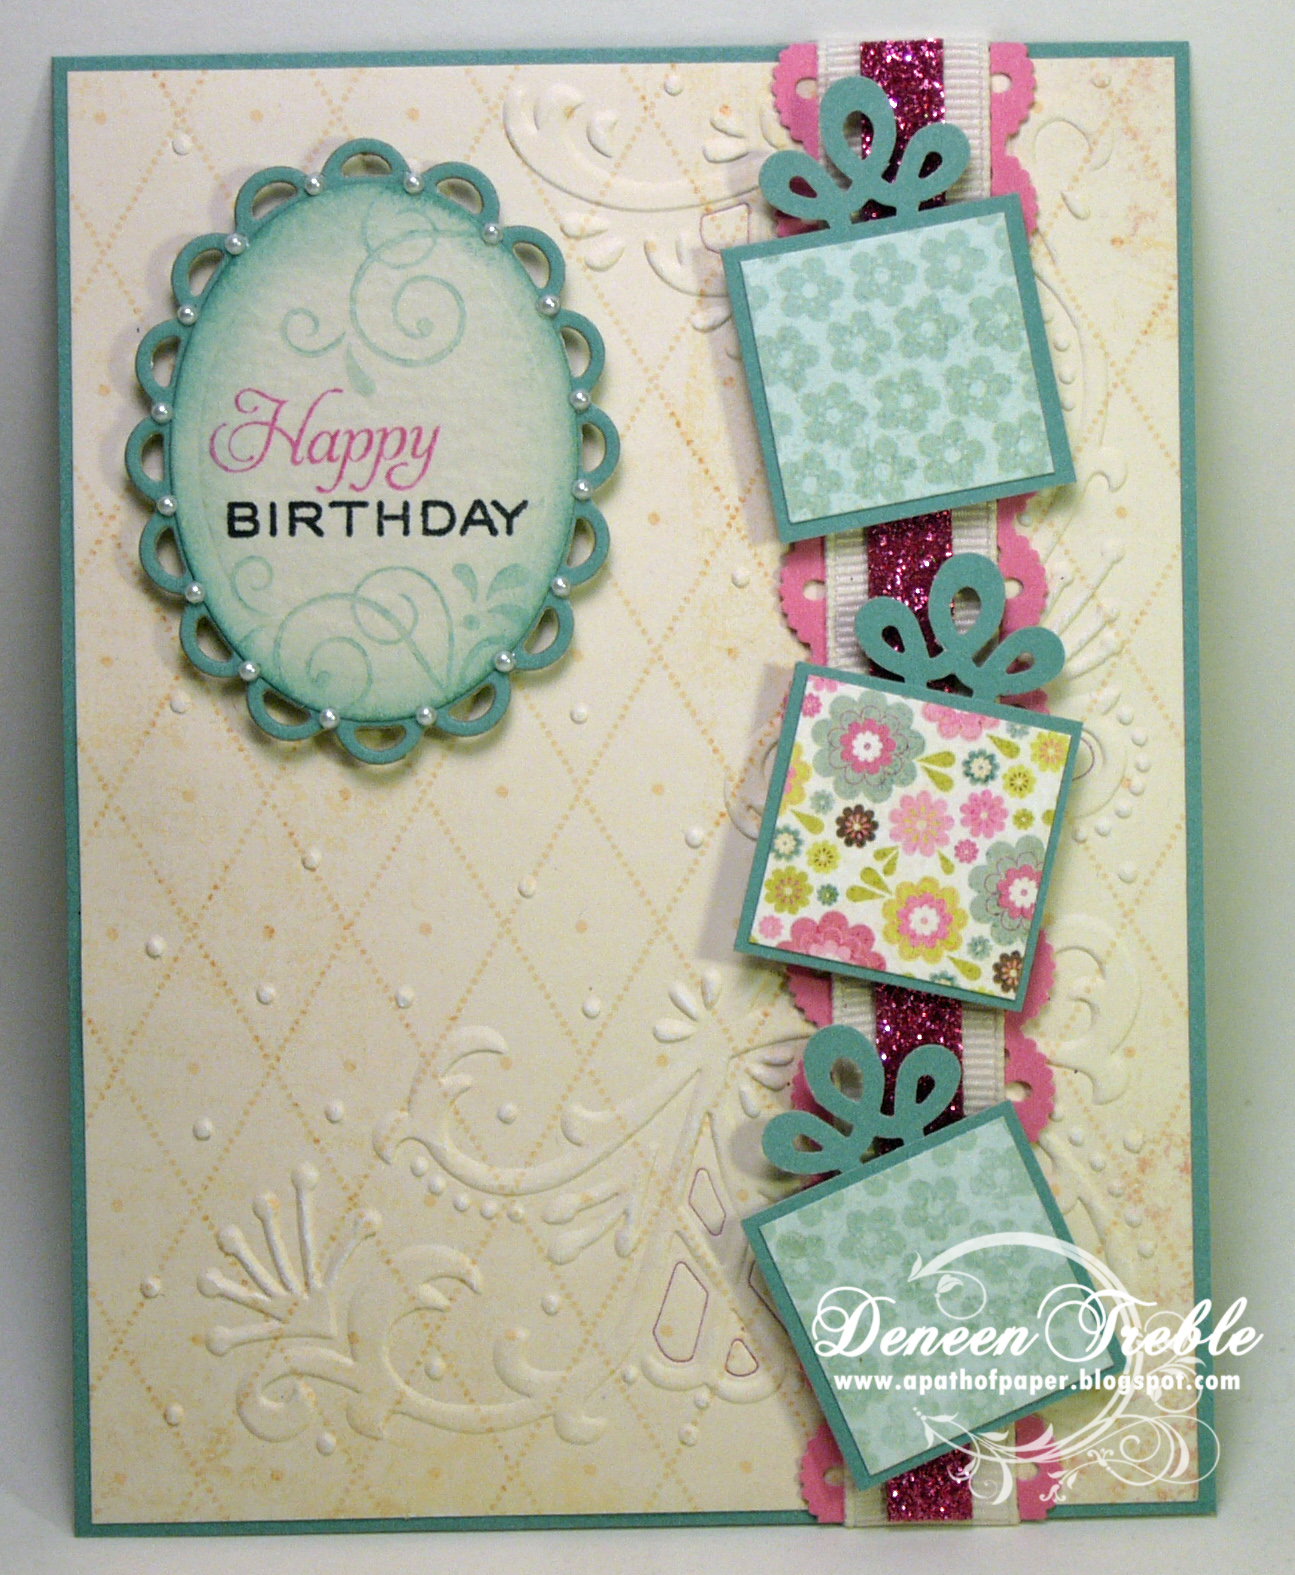 Homemade birthday gifts for mom ideas 8th